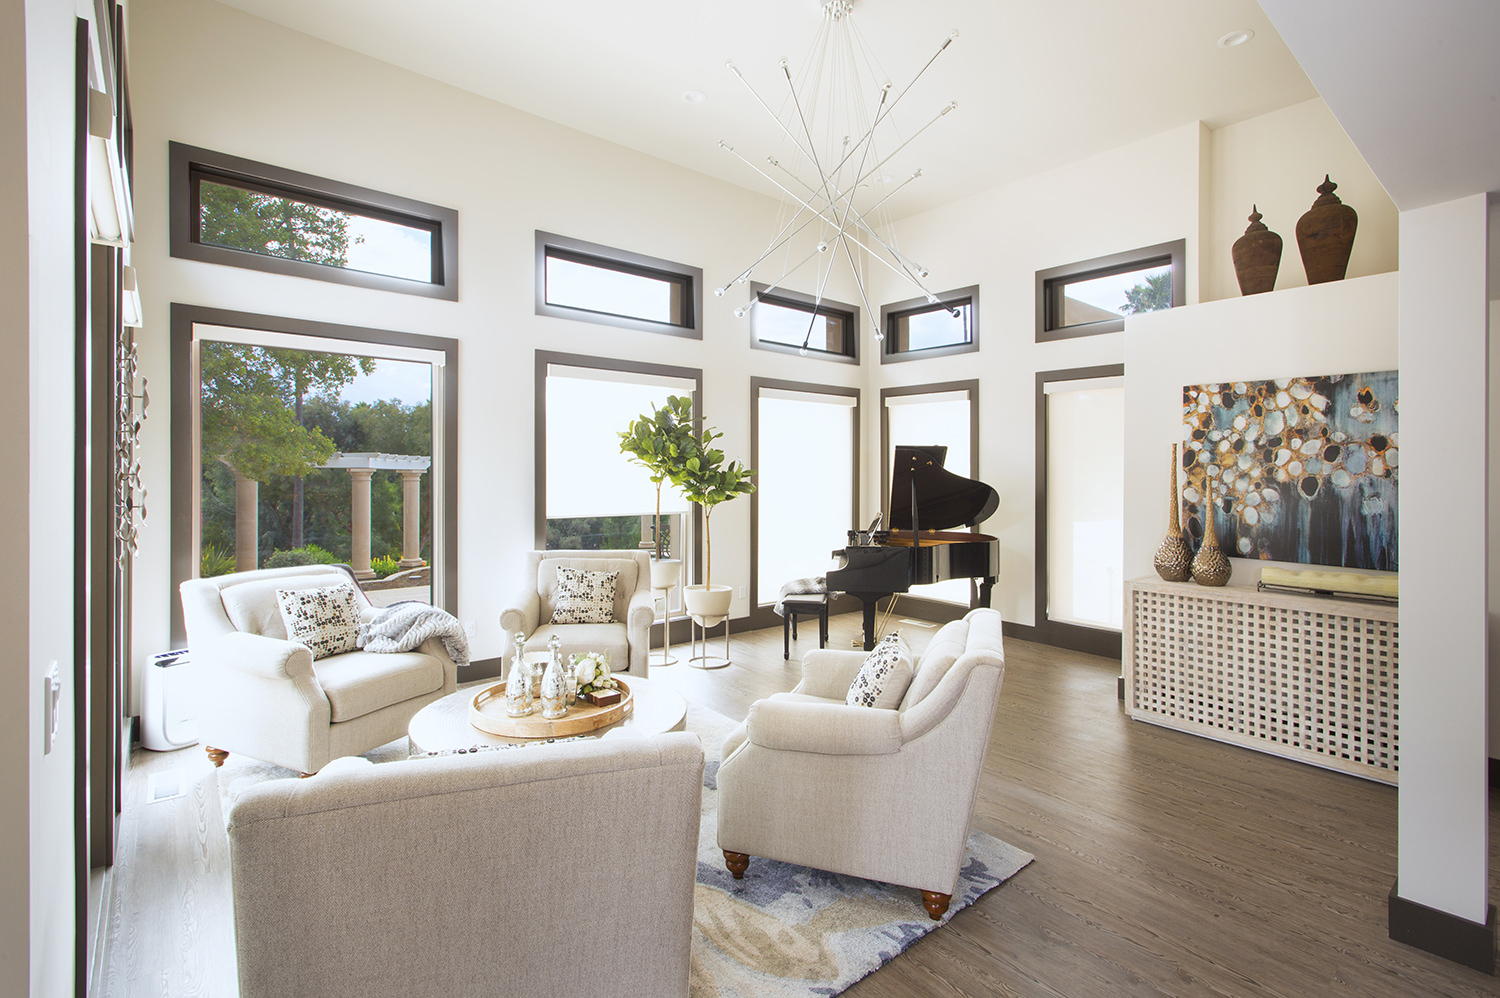 living-room-interior-design-los-altos-california-ktj-design-co-4.jpg